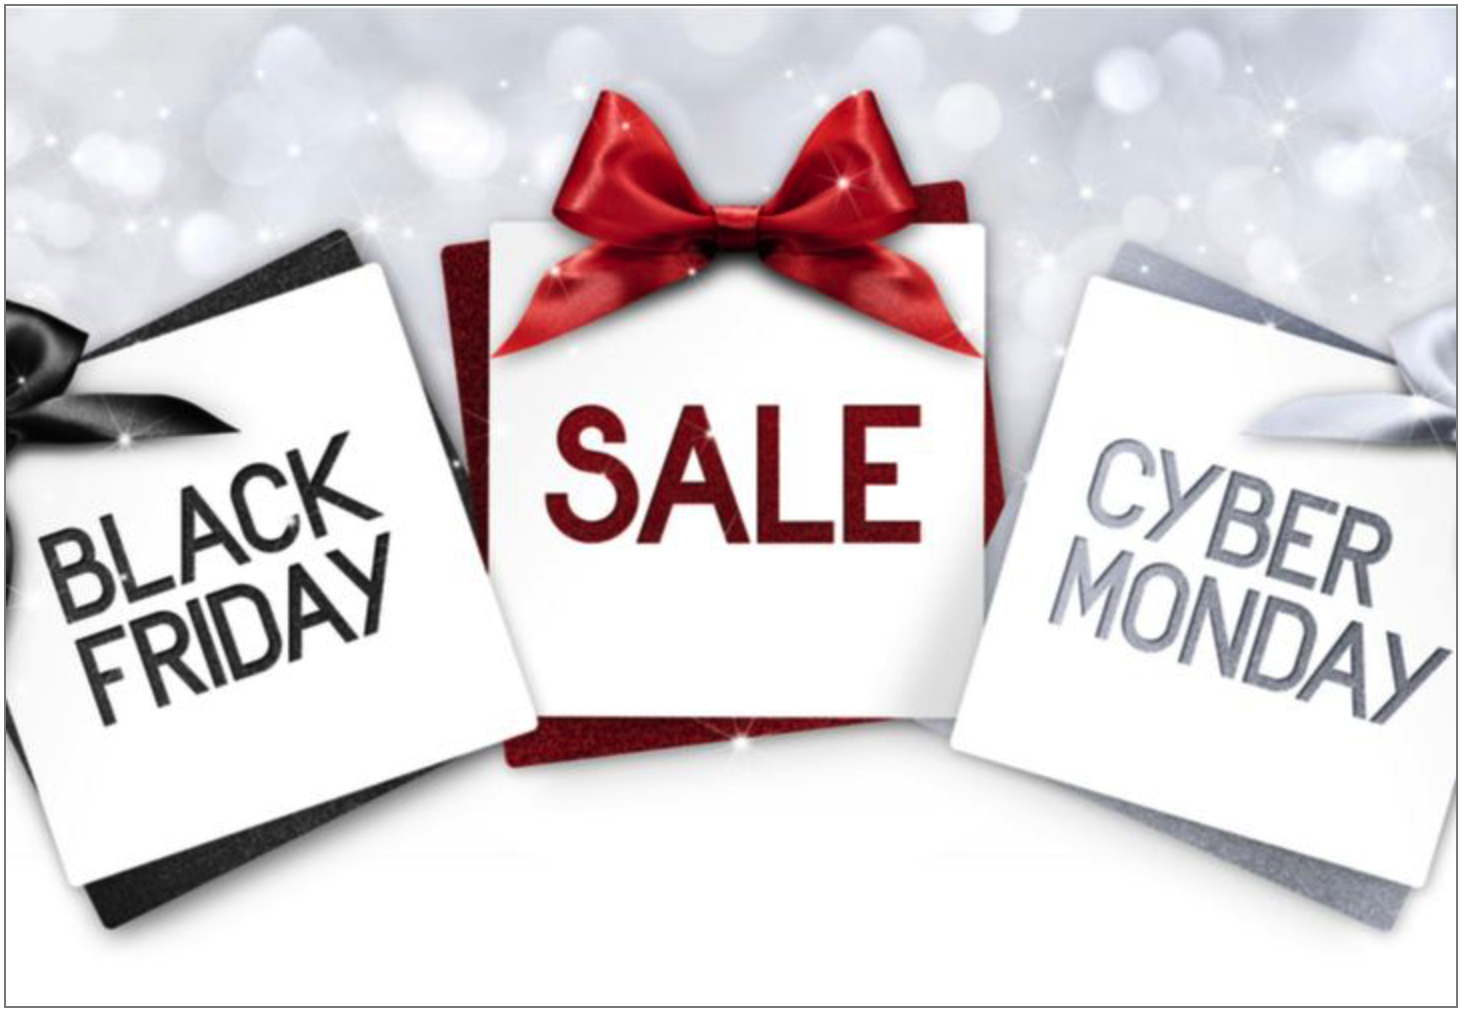 Barclaycard Reports Increased Volume And Value of Black Friday Transactions